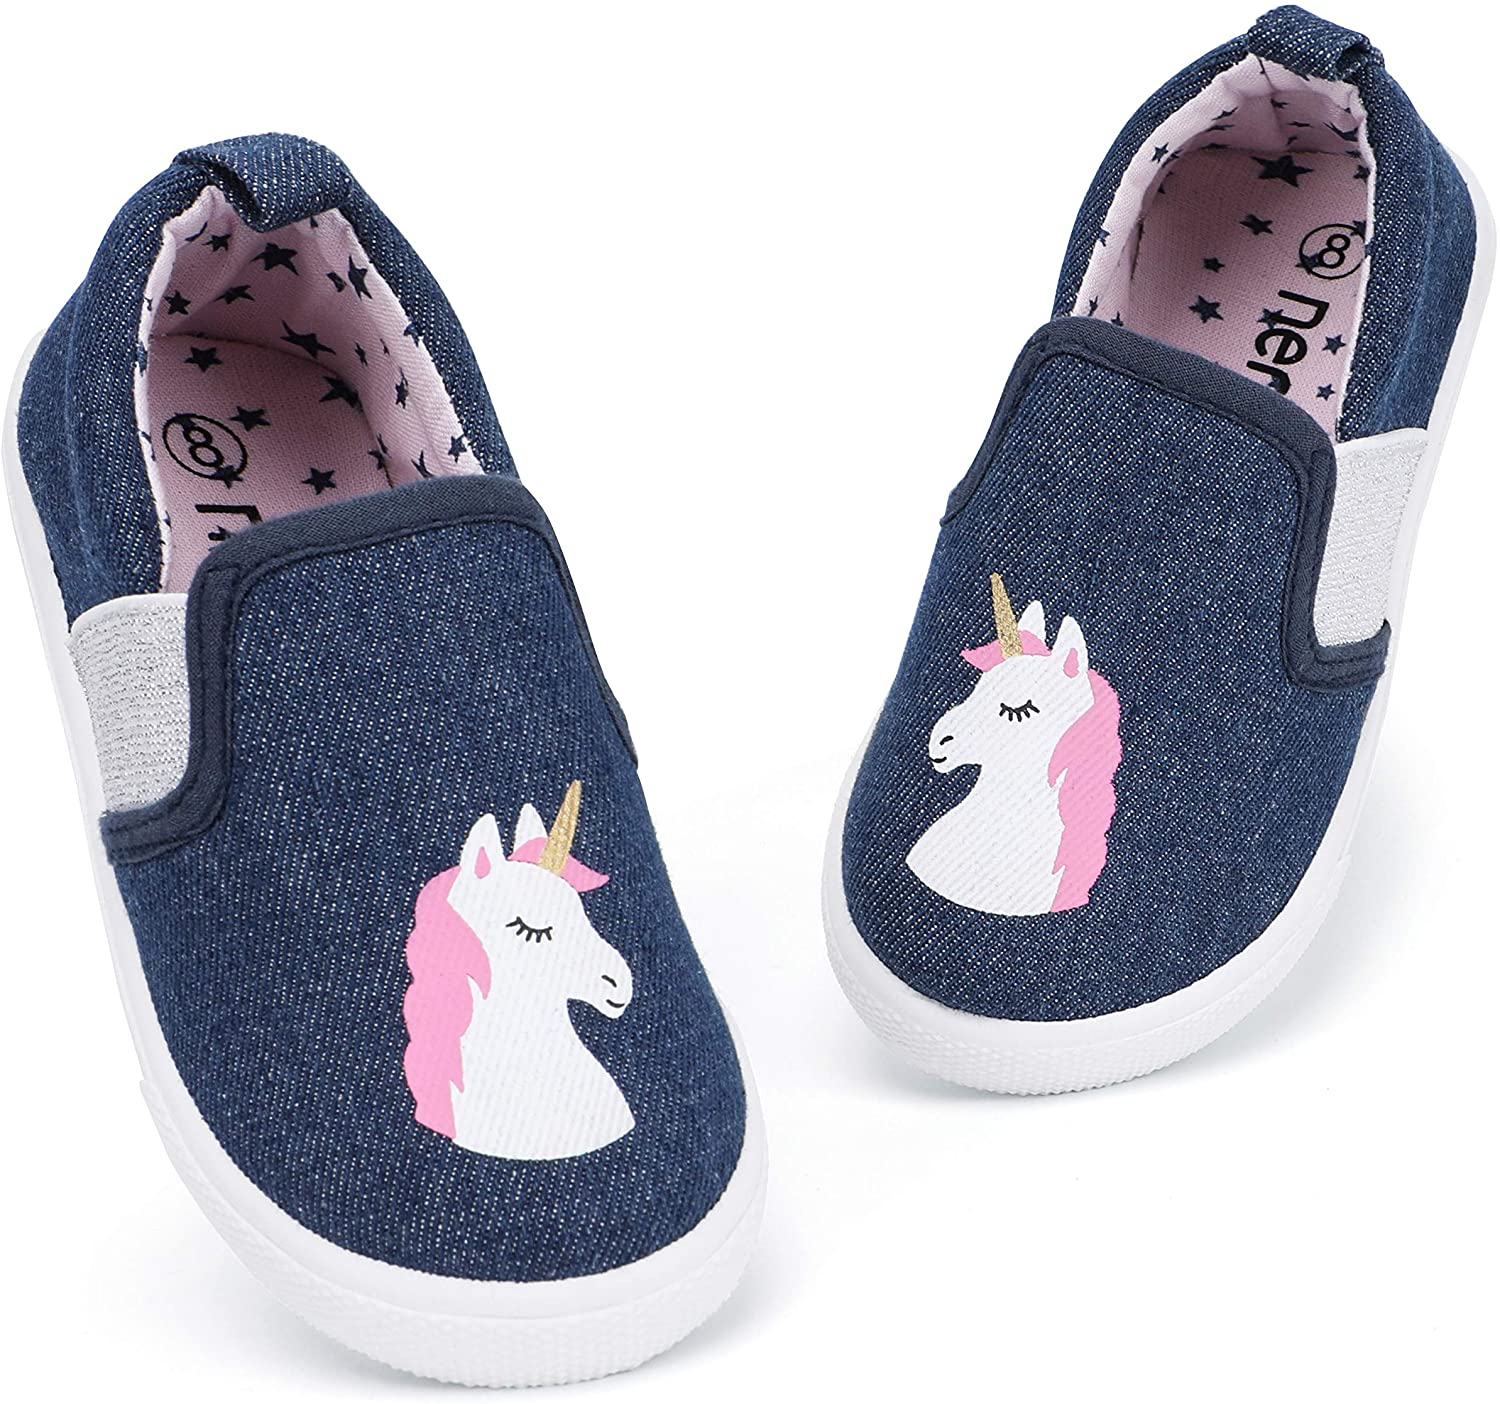 RANLY & SMILY Toddler Shoes Slip On Casual Sneakers